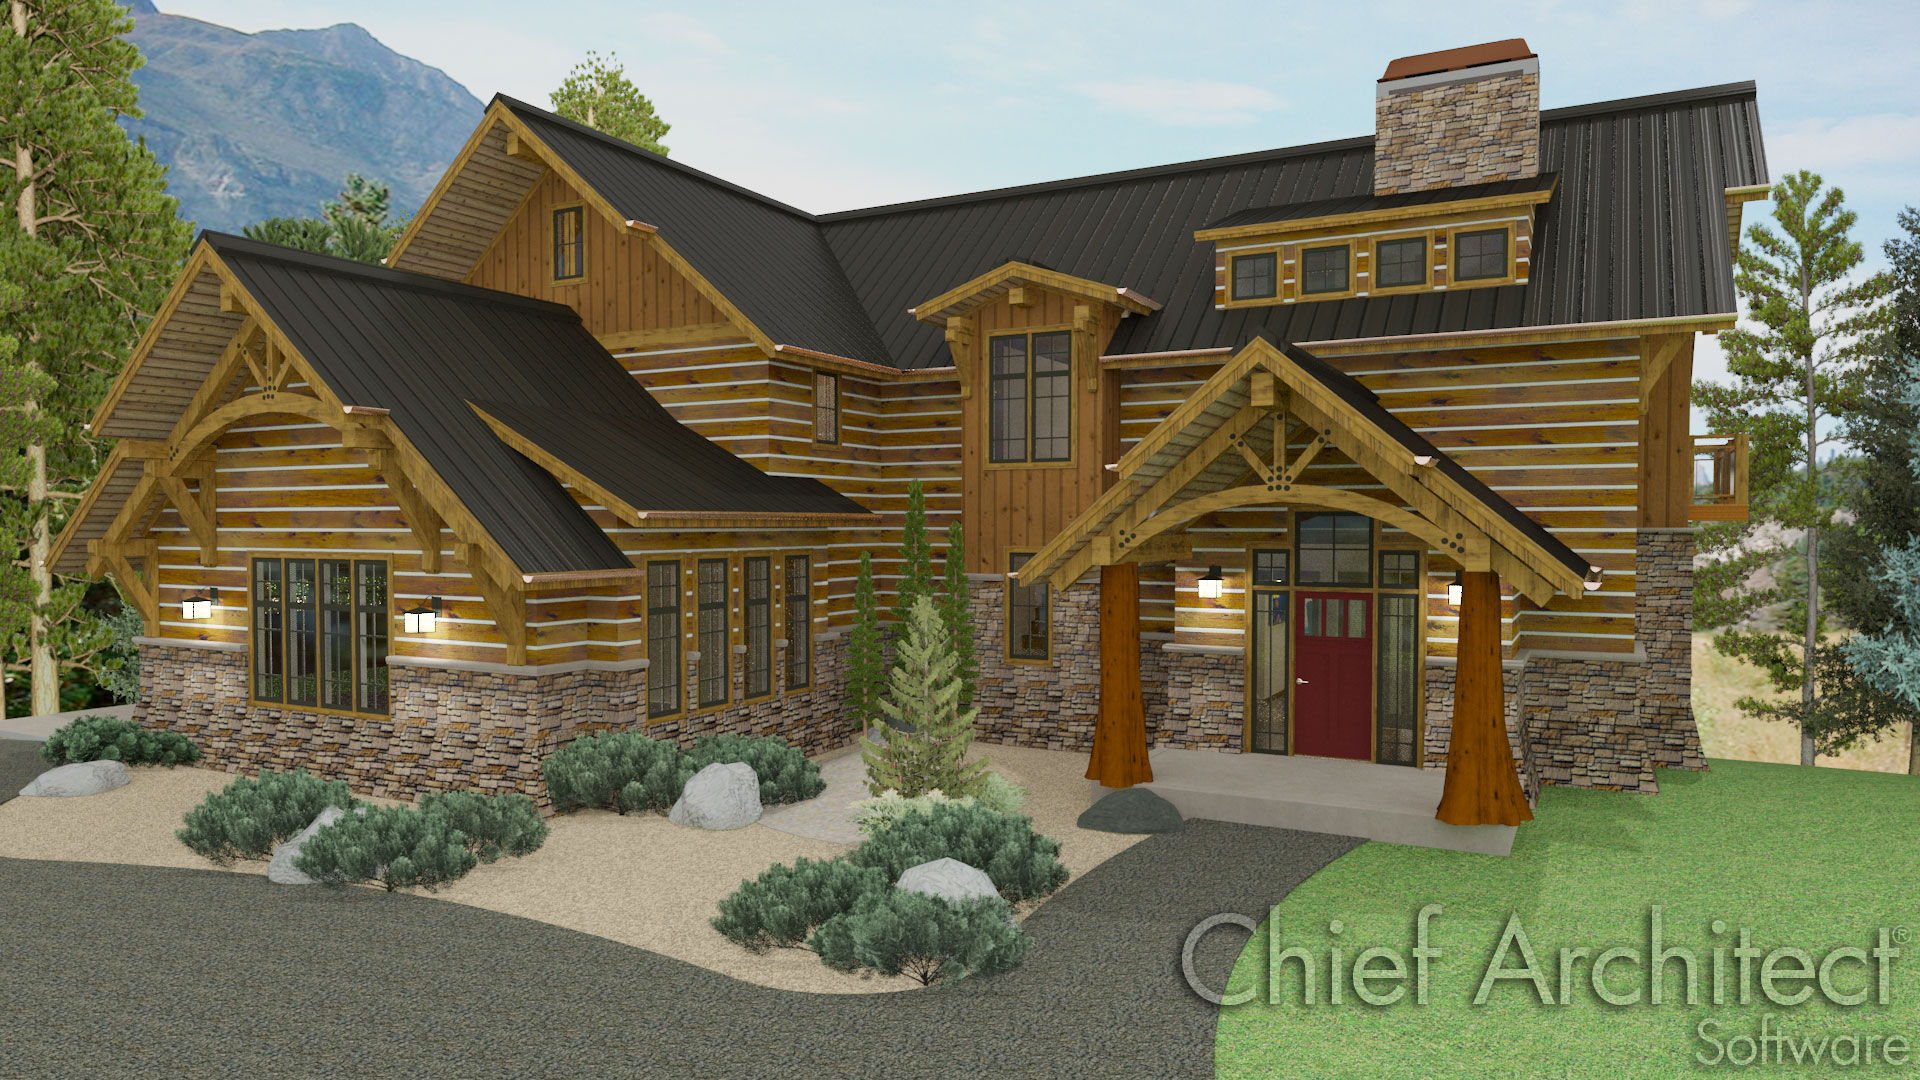 Chief architect home design software samples gallery for Free home builder